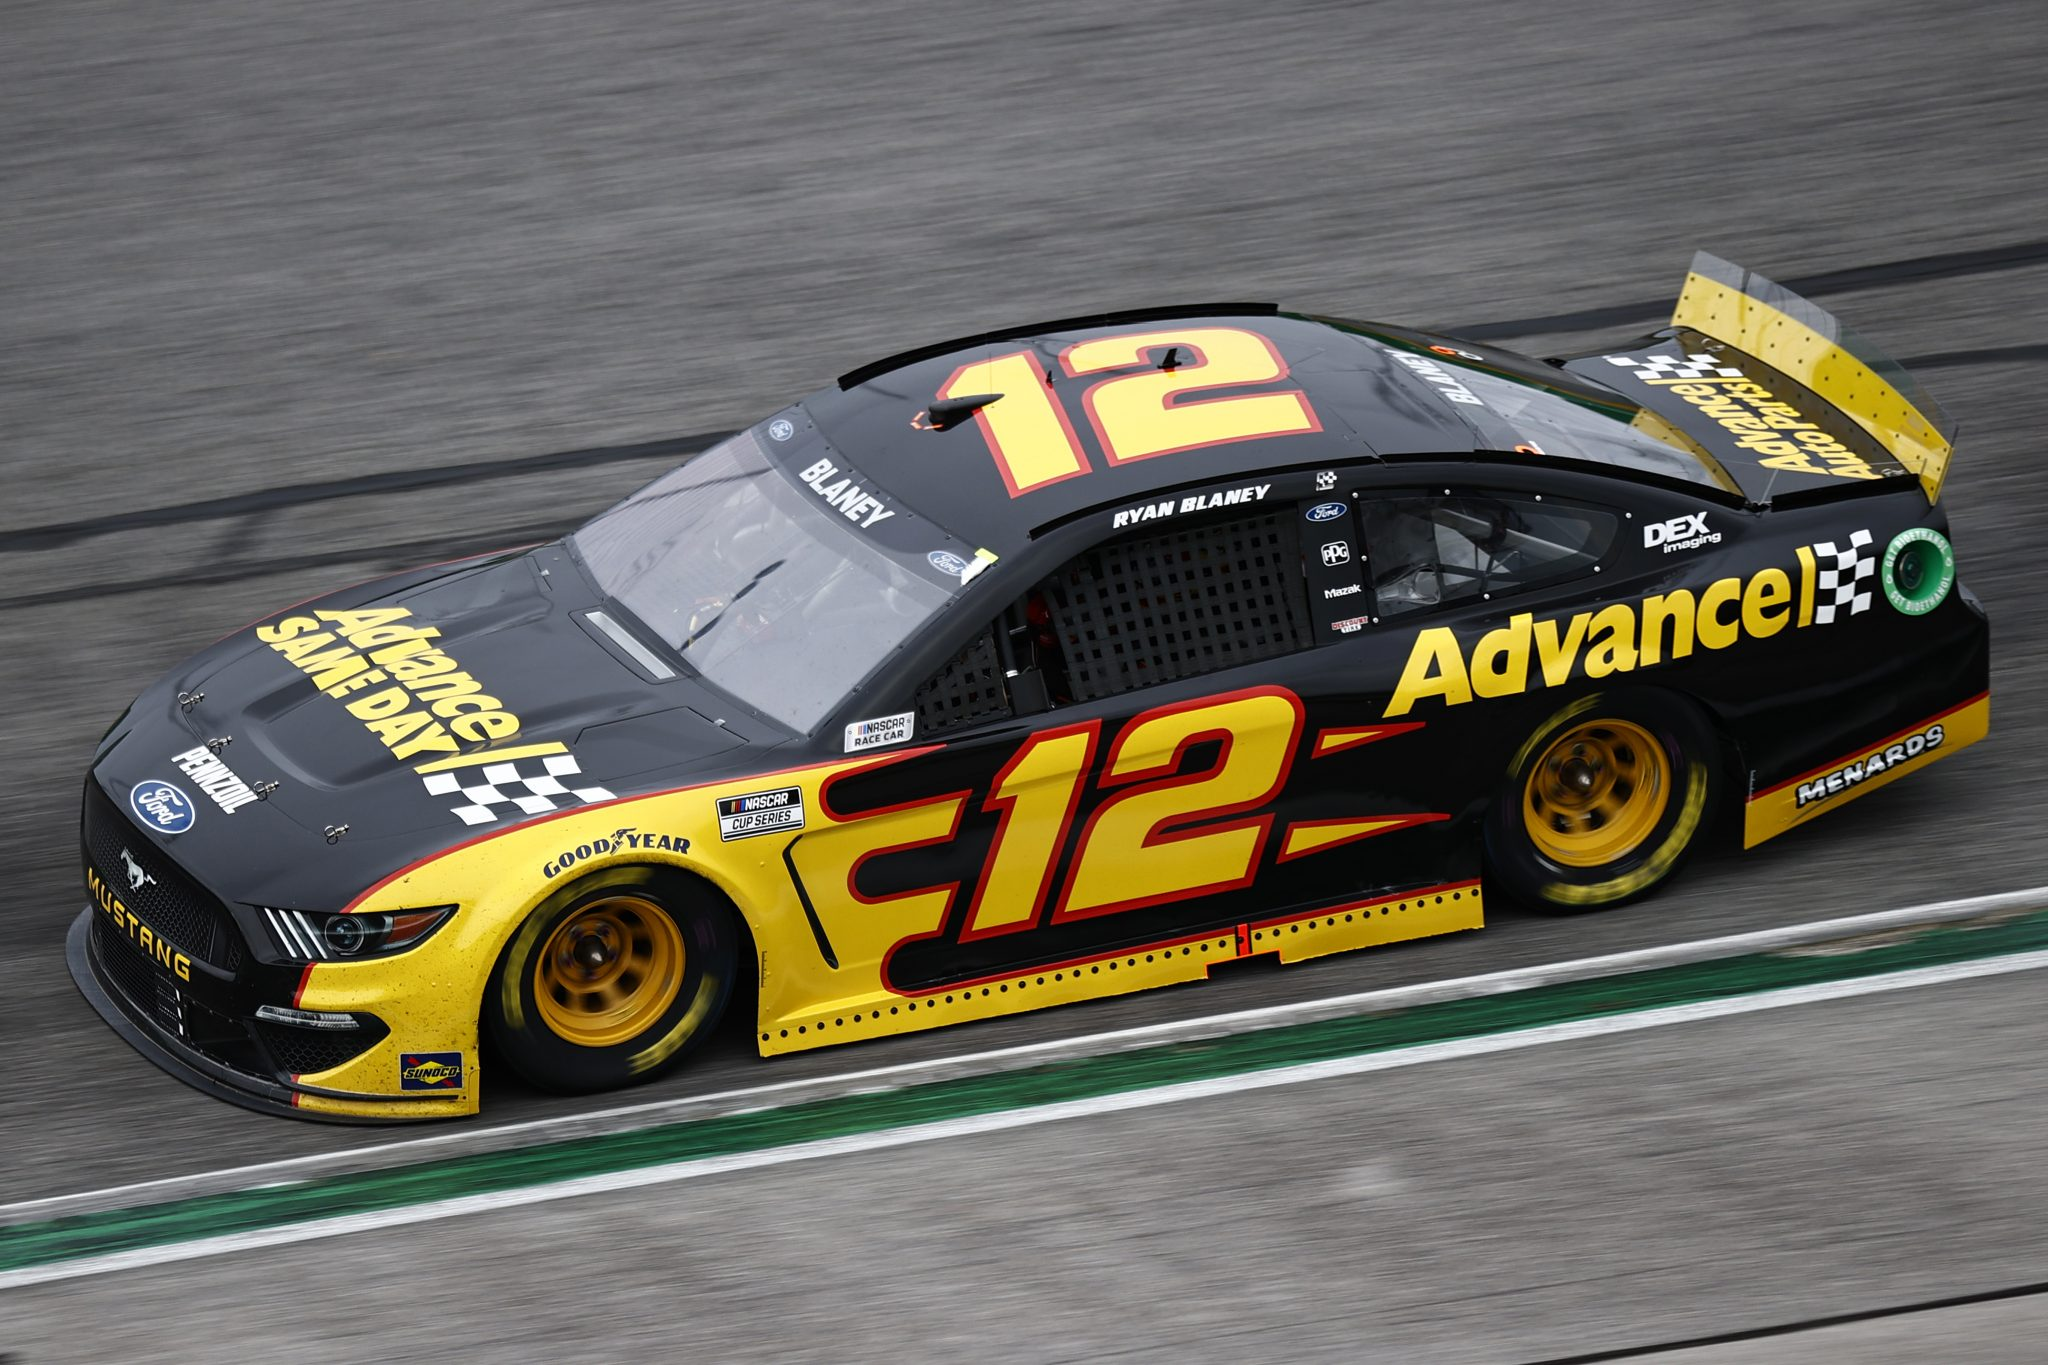 HAMPTON, GEORGIA - JULY 11: Ryan Blaney, driver of the #12 Advance Auto Parts Ford, drives during the NASCAR Cup Series Quaker State 400 presented by Walmart at Atlanta Motor Speedway on July 11, 2021 in Hampton, Georgia. (Photo by Jared C. Tilton/Getty Images) | Getty Images) | Getty Images